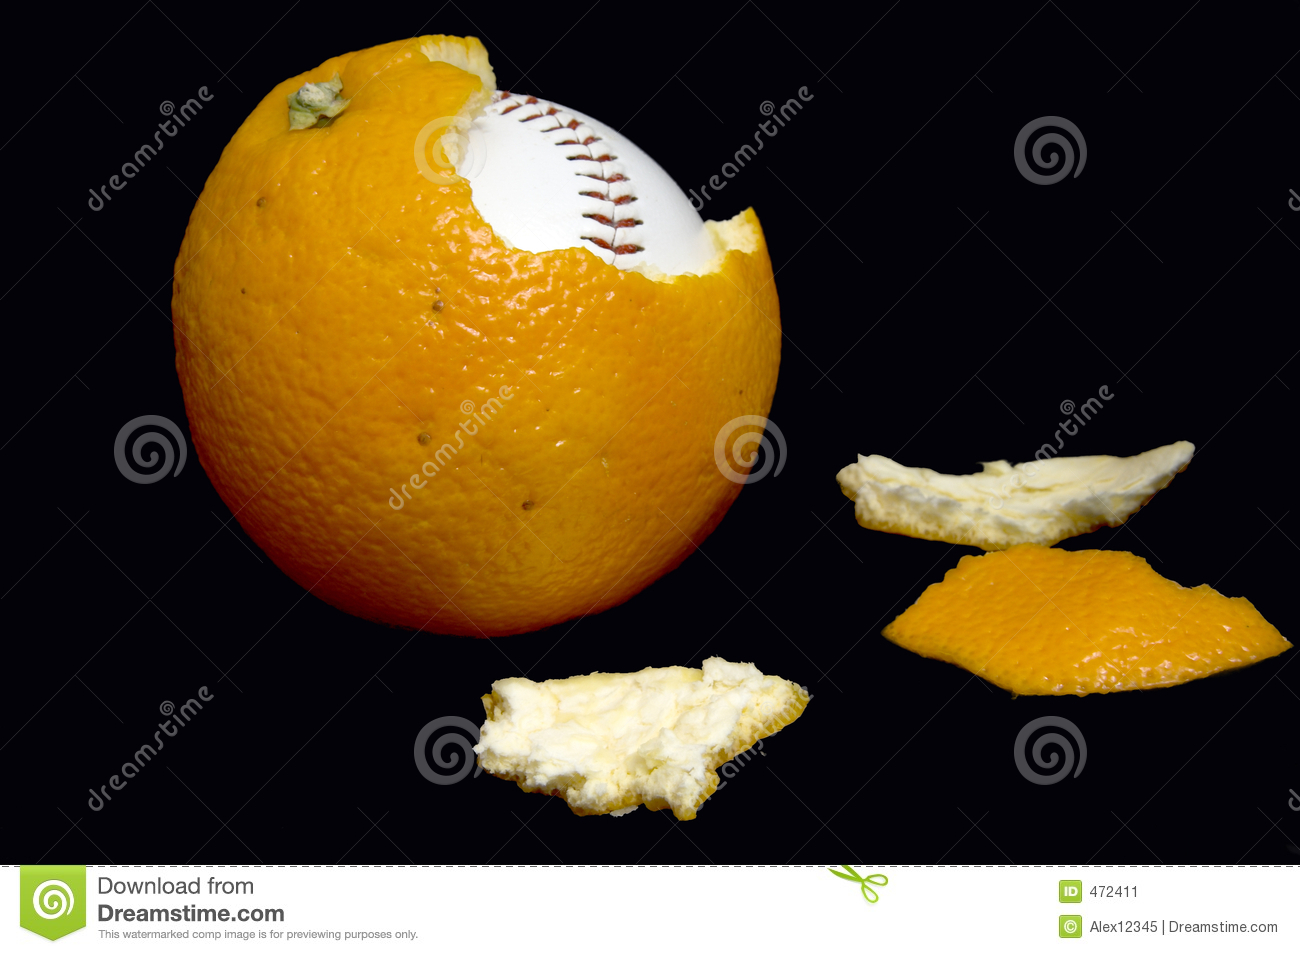 Download Orangeballo stock image. Image of macro, hardball, game - 472411